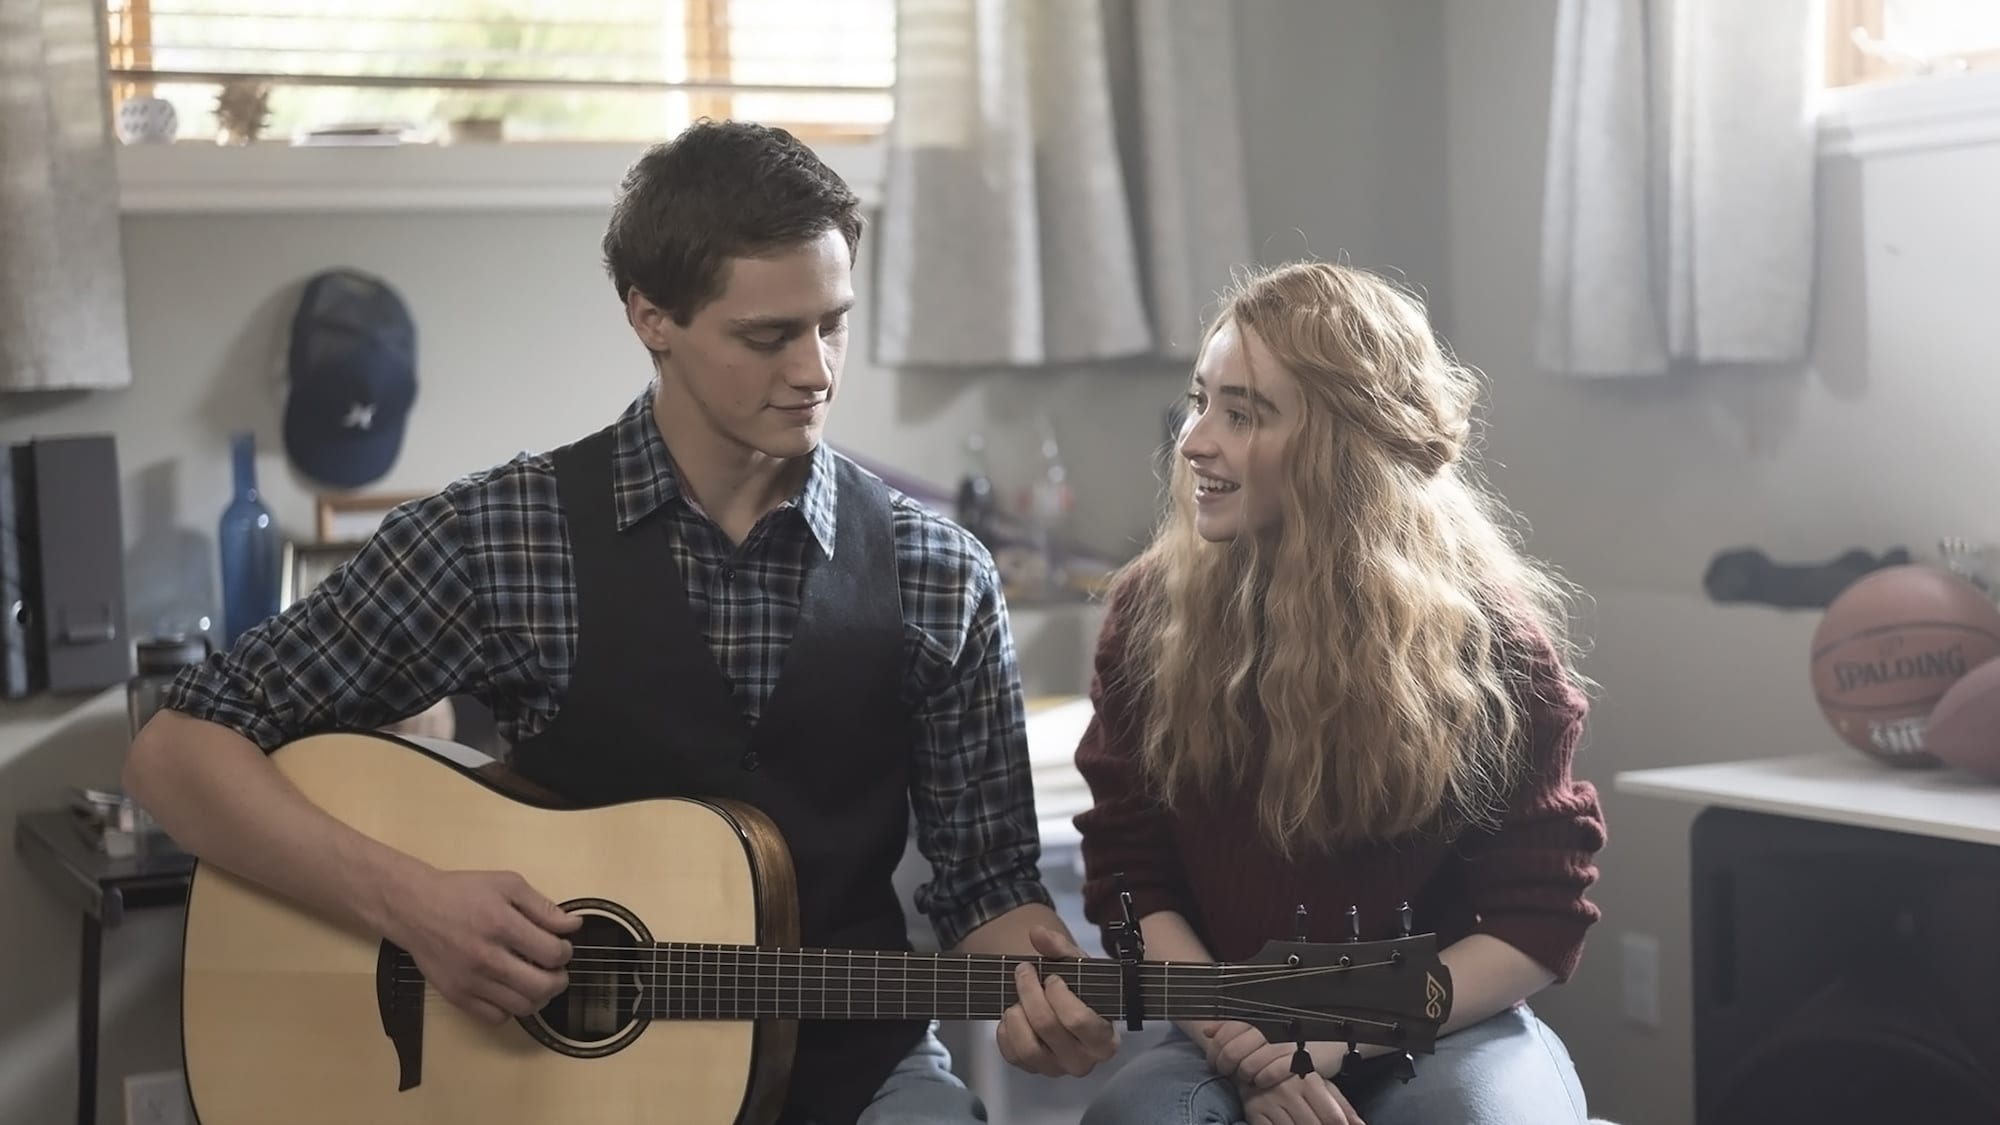 CLOUDS - A teenager is diagnosed with a rare form of bone cancer and finds a way to inspire others with the little time he has left. (Disney/ Laurent Guerin)  Fin Argus, Sabrina Carpenter